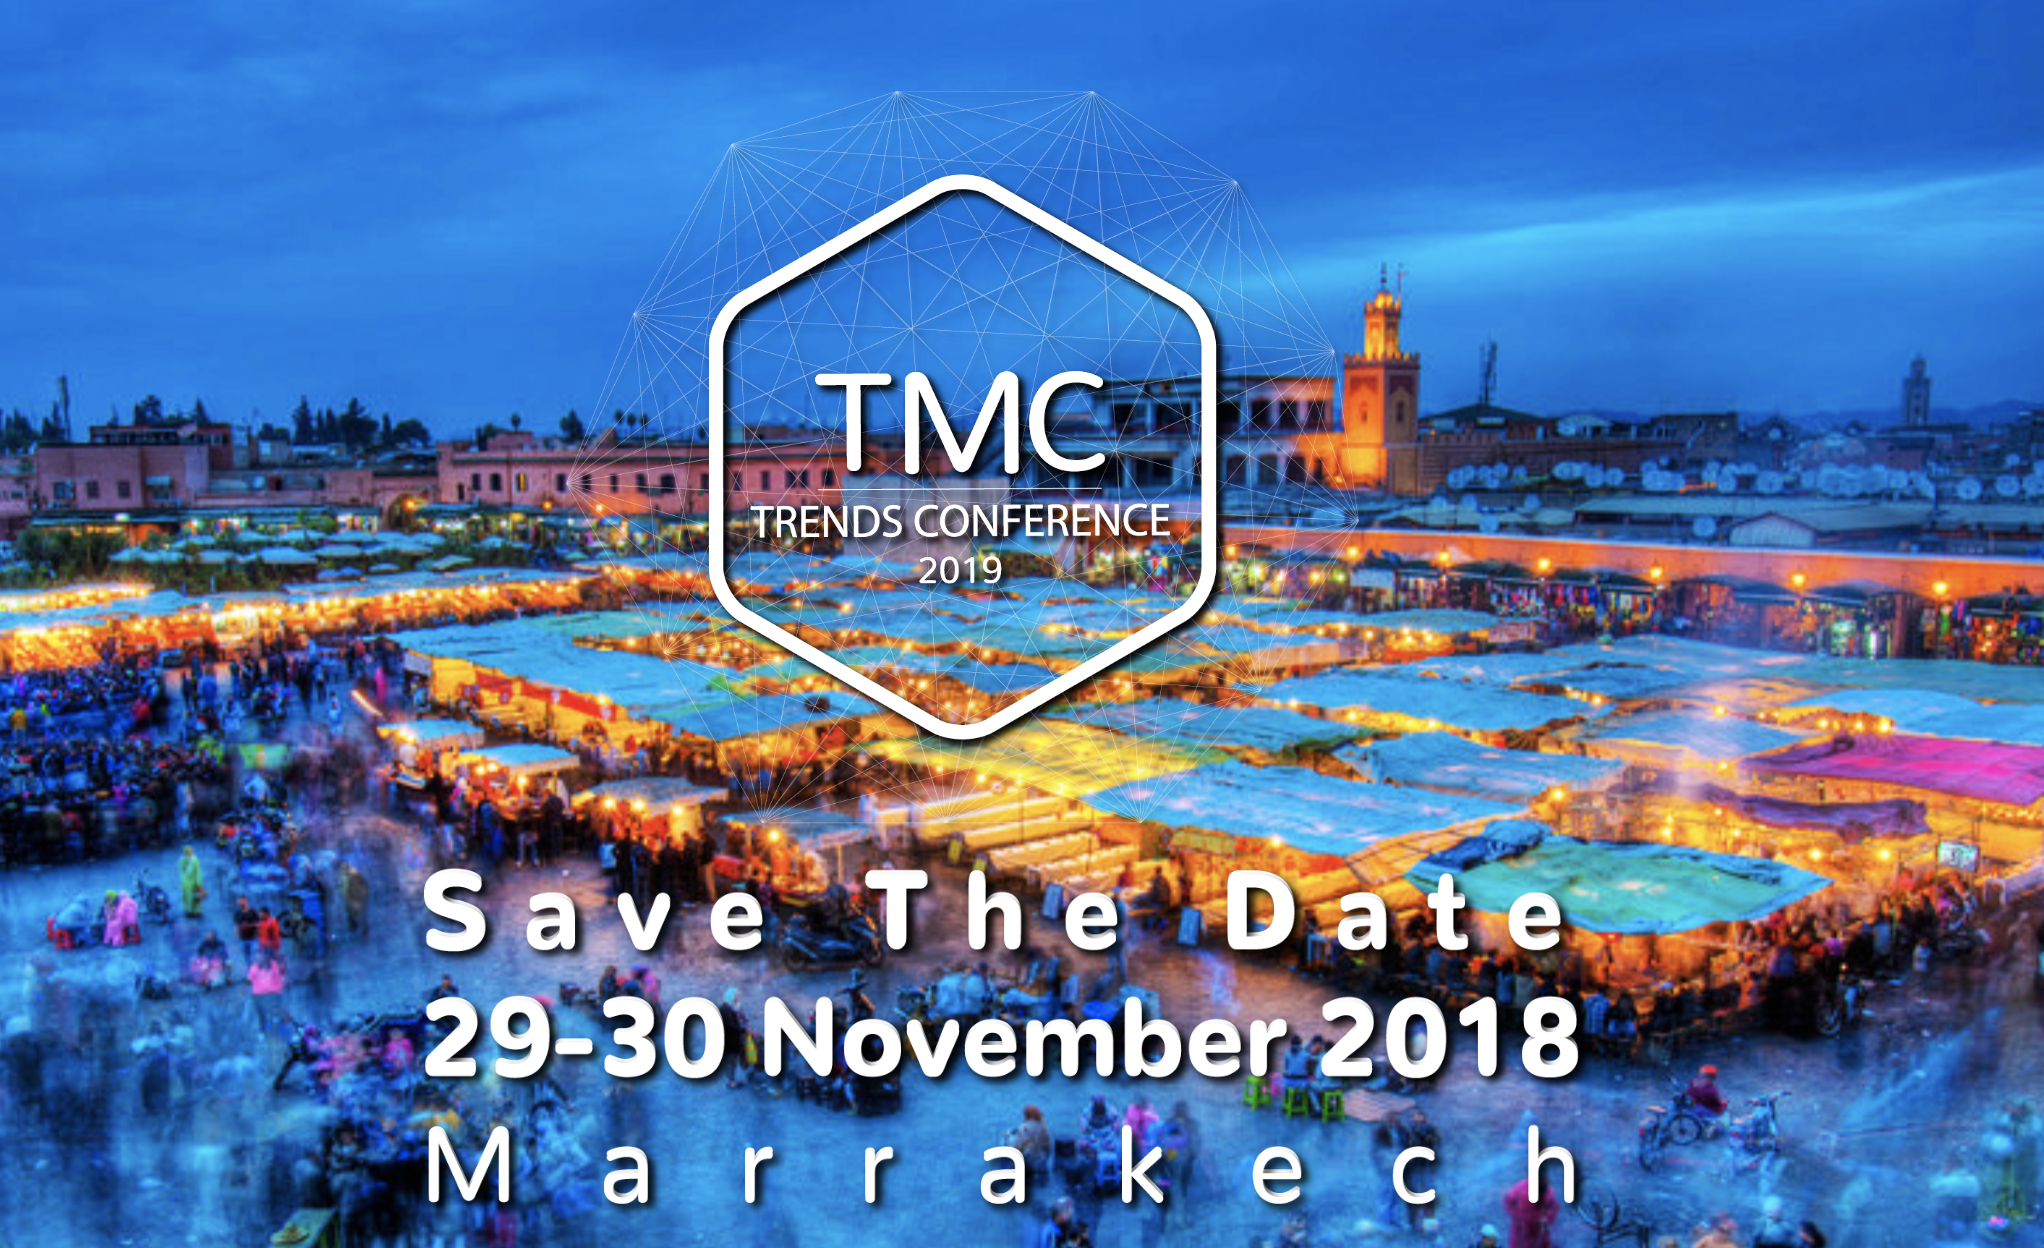 TMC Trends Conference